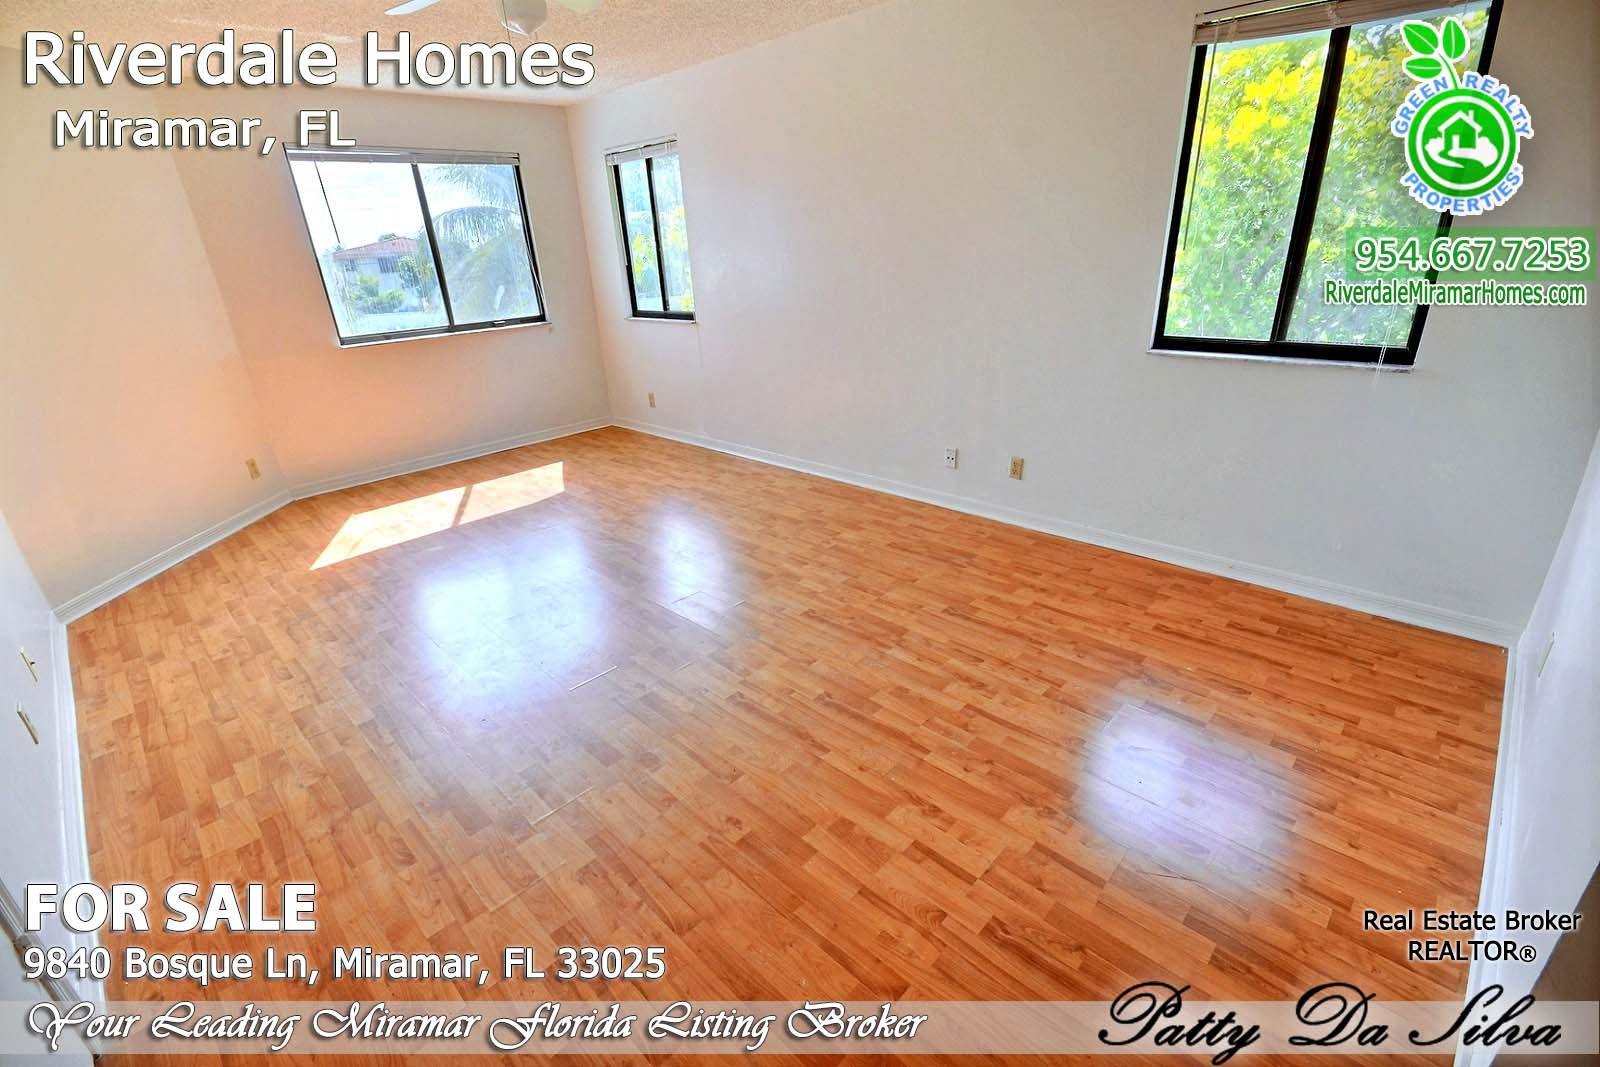 Riverdale Homes For Sale in Miramar Florida - 9840 Bosque Lane (21)